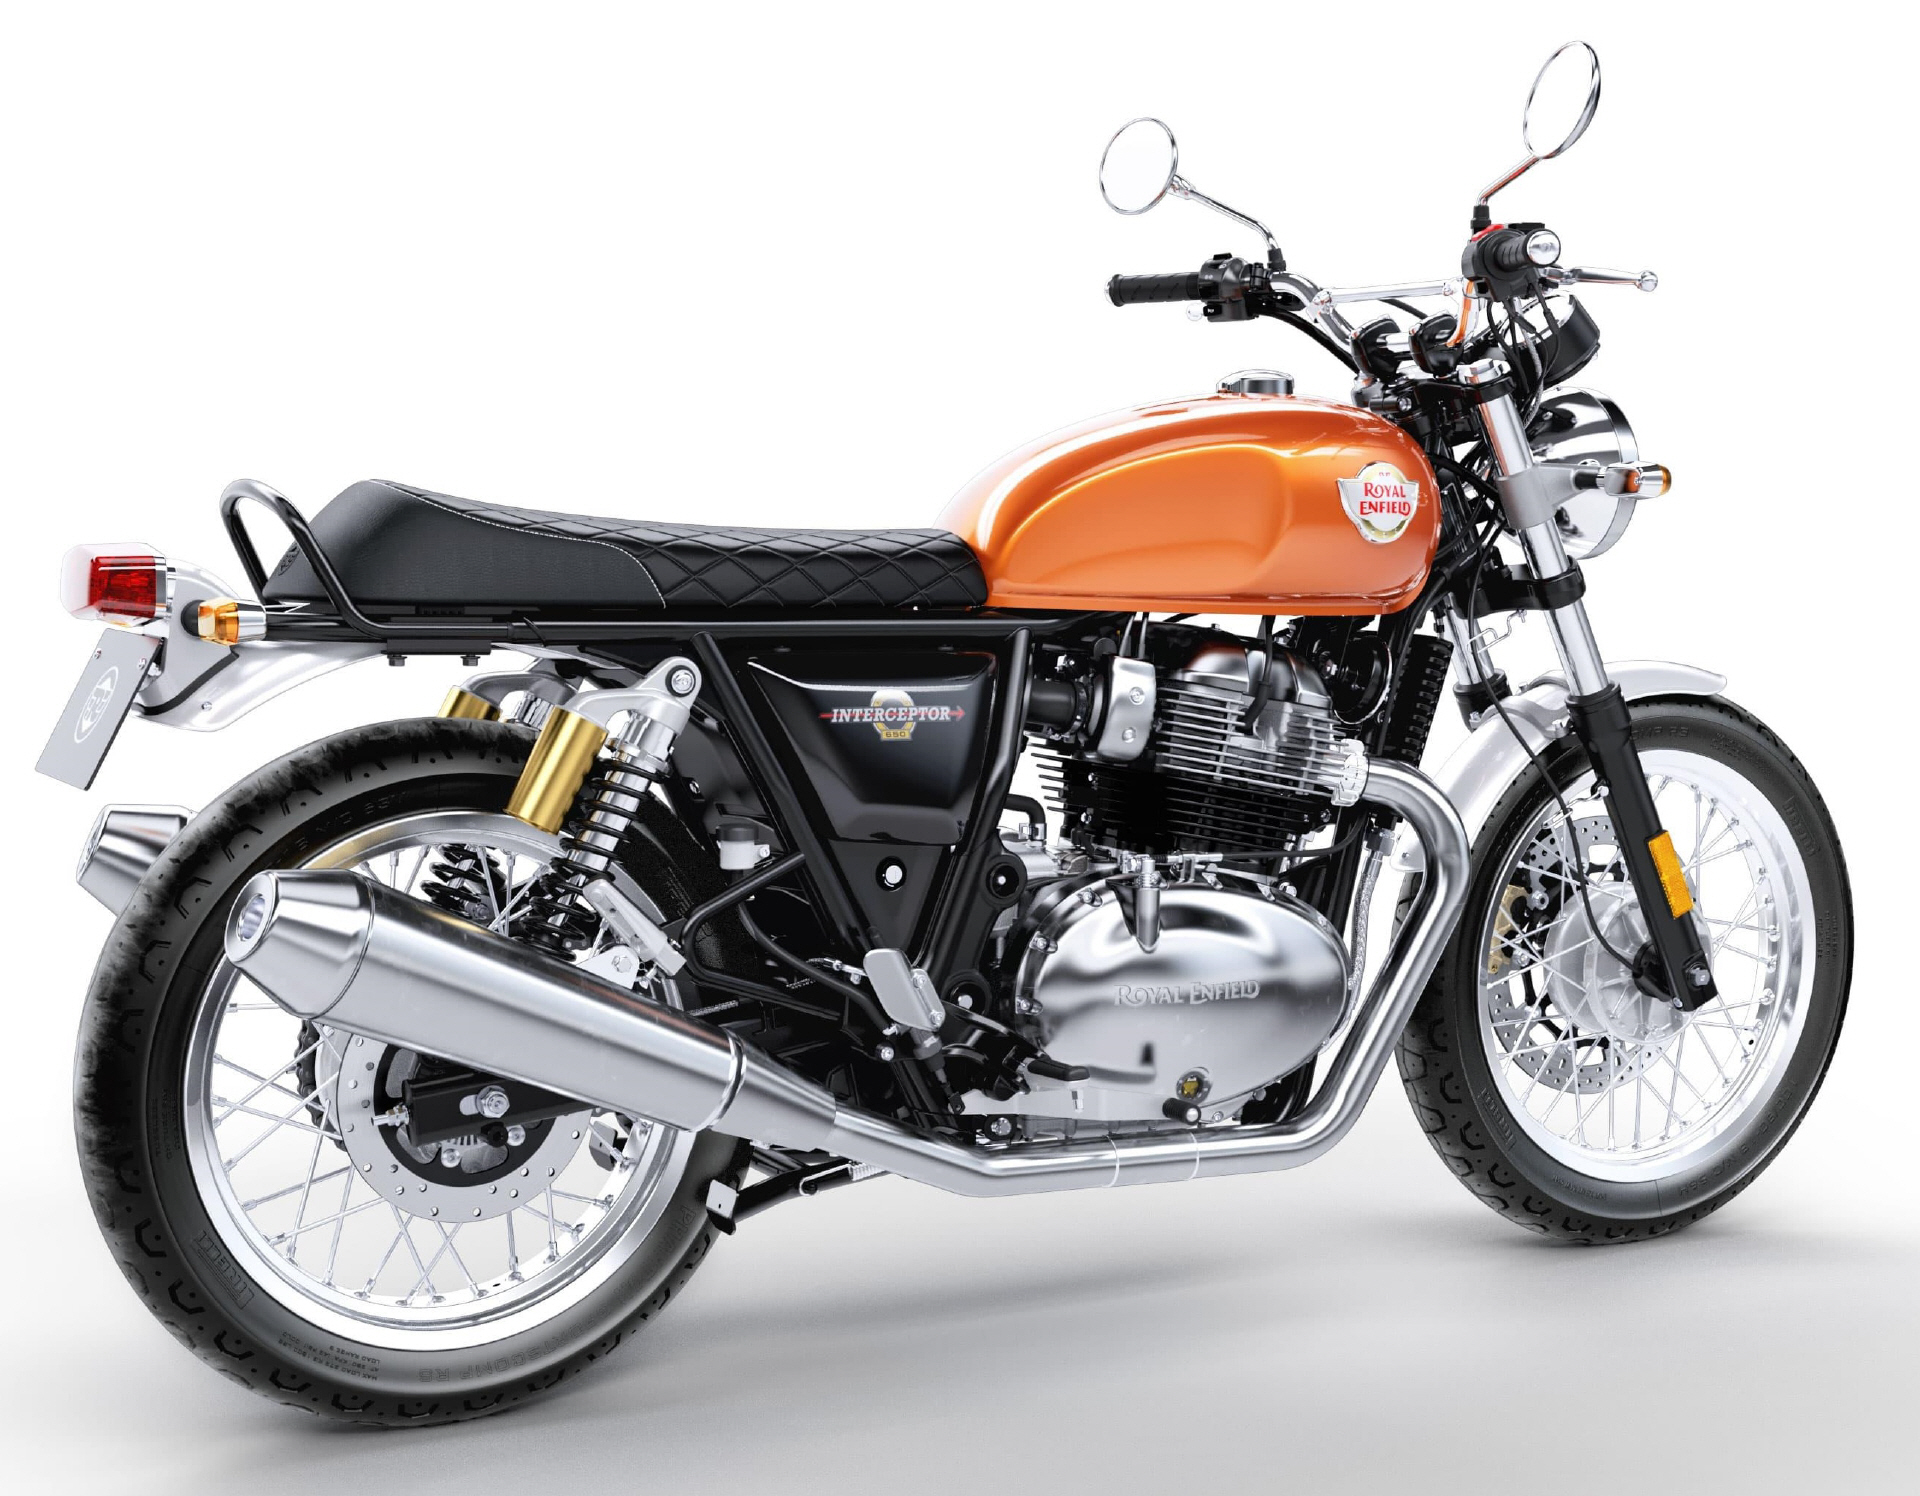 royalenfield_interceptor_twin_02jpg